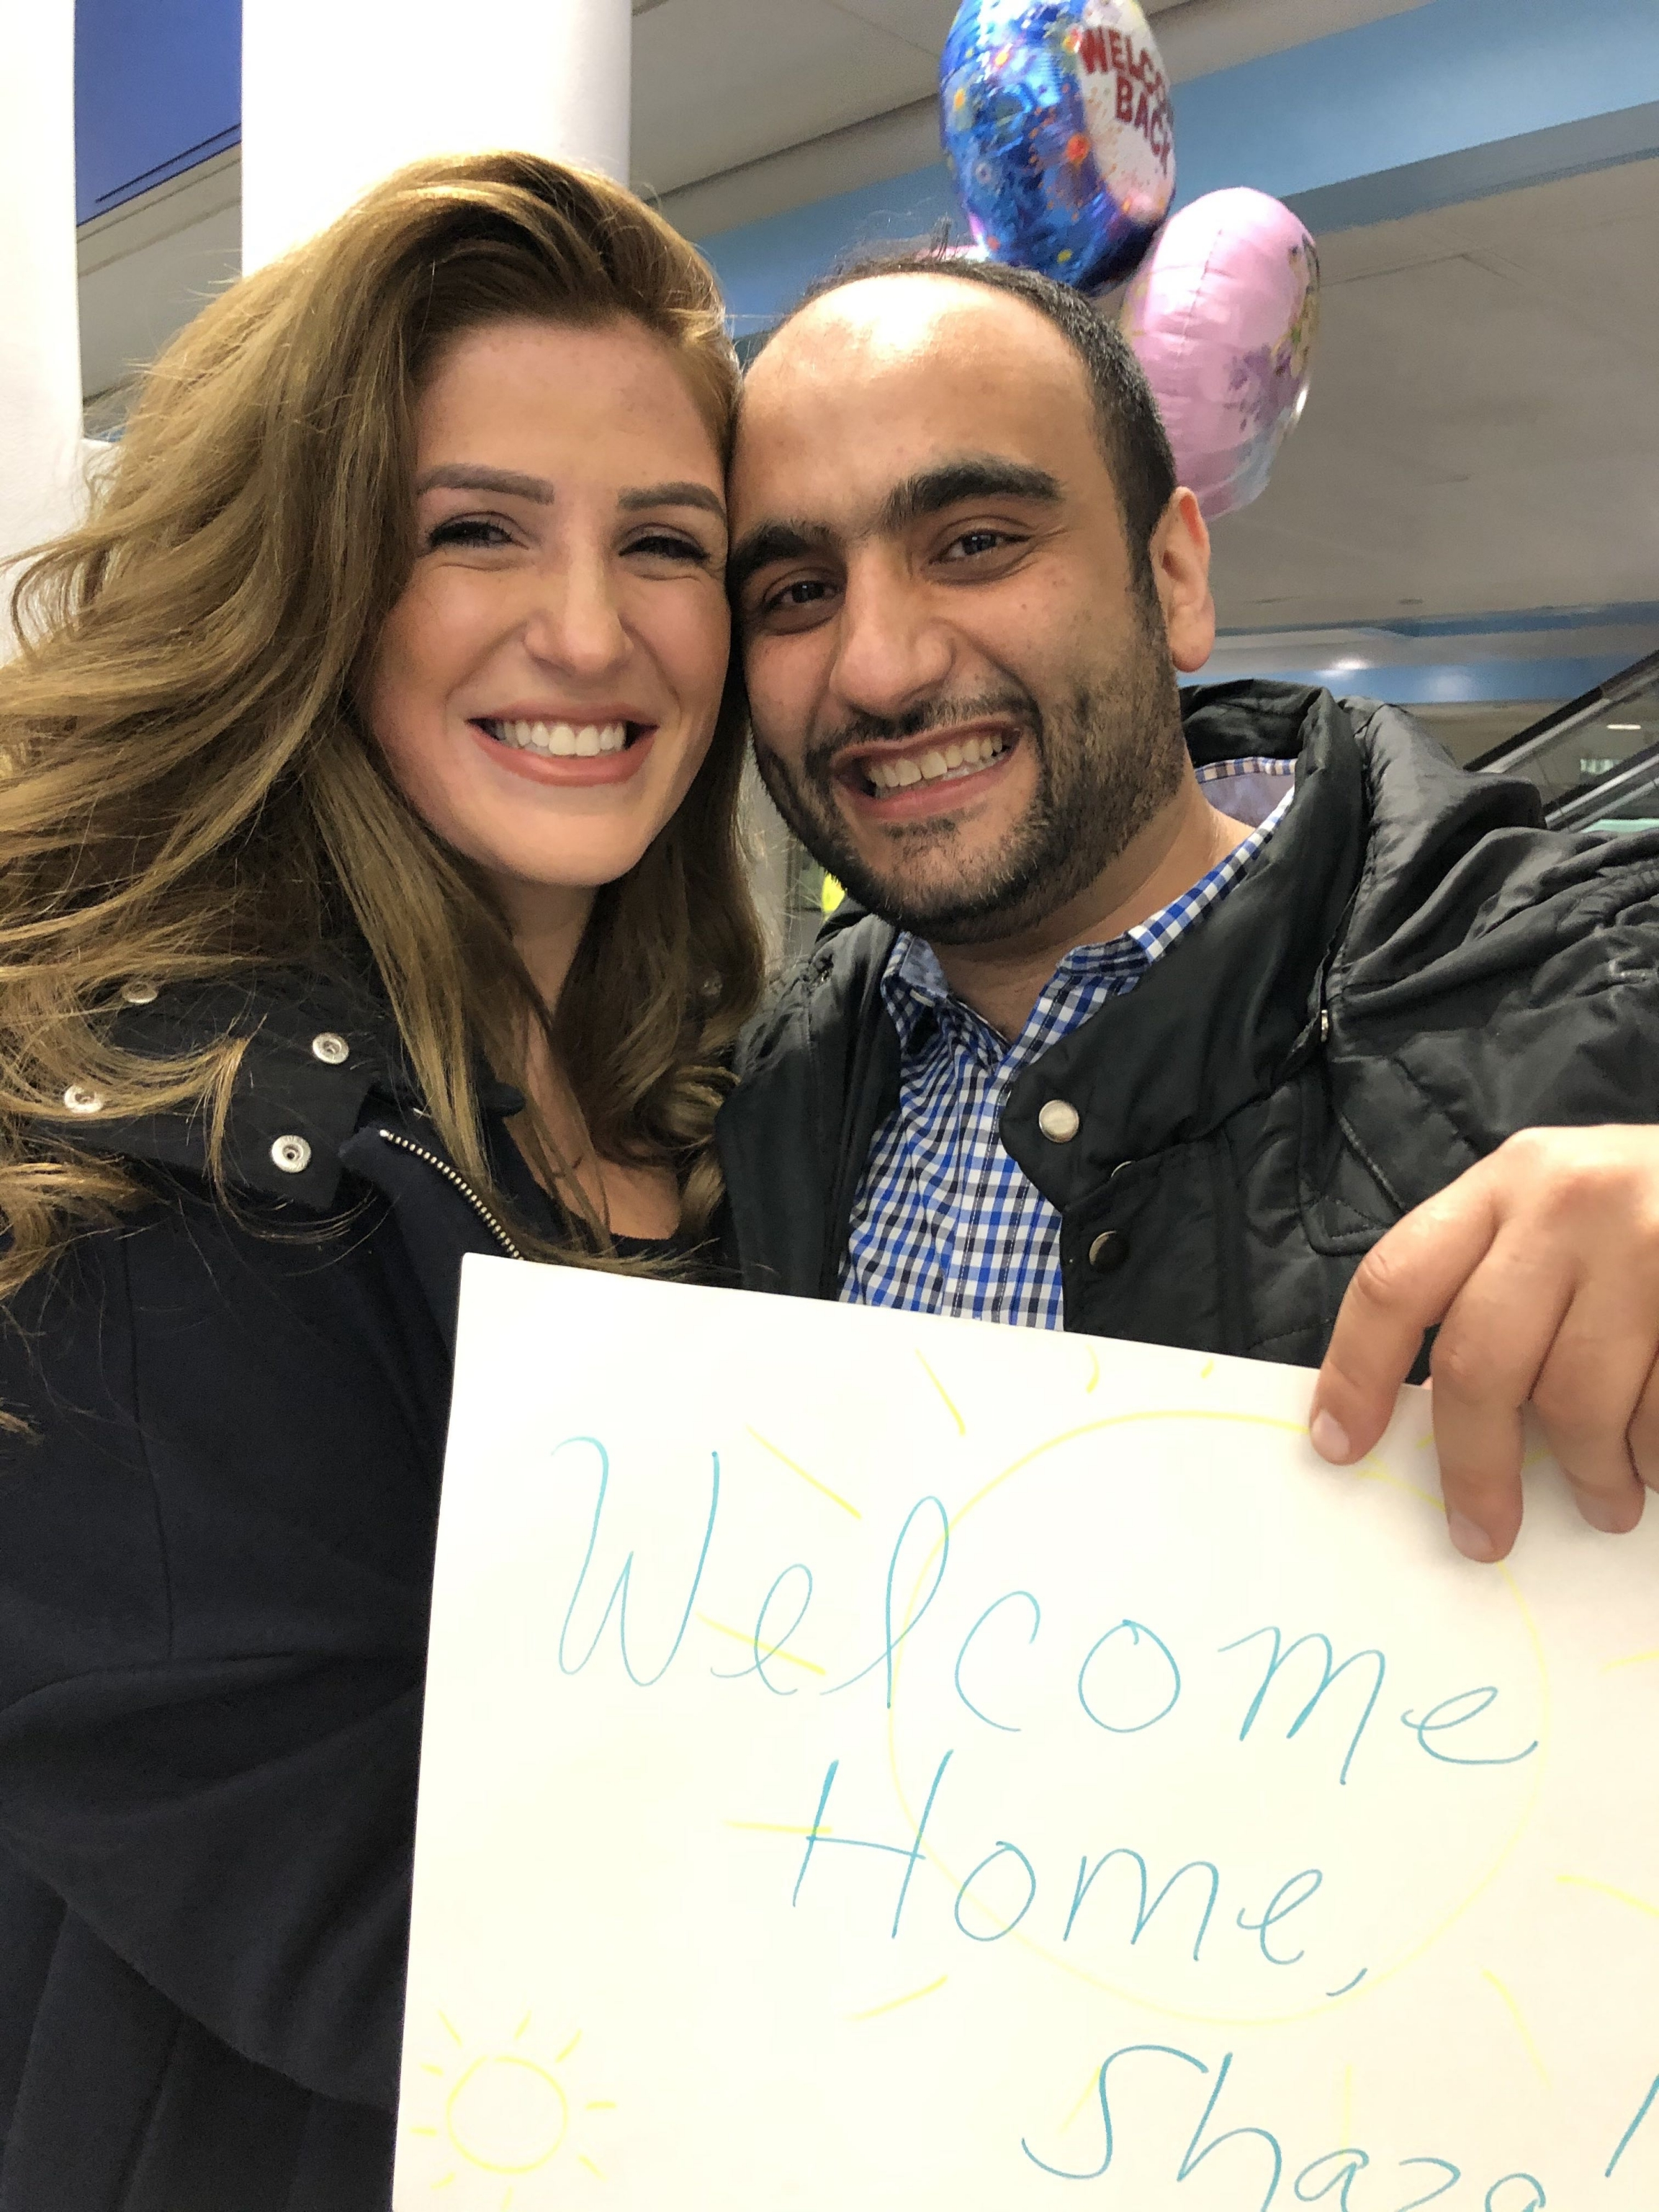 After seven years of living apart, Shaza finally joined Rami in the United States earlier this year.